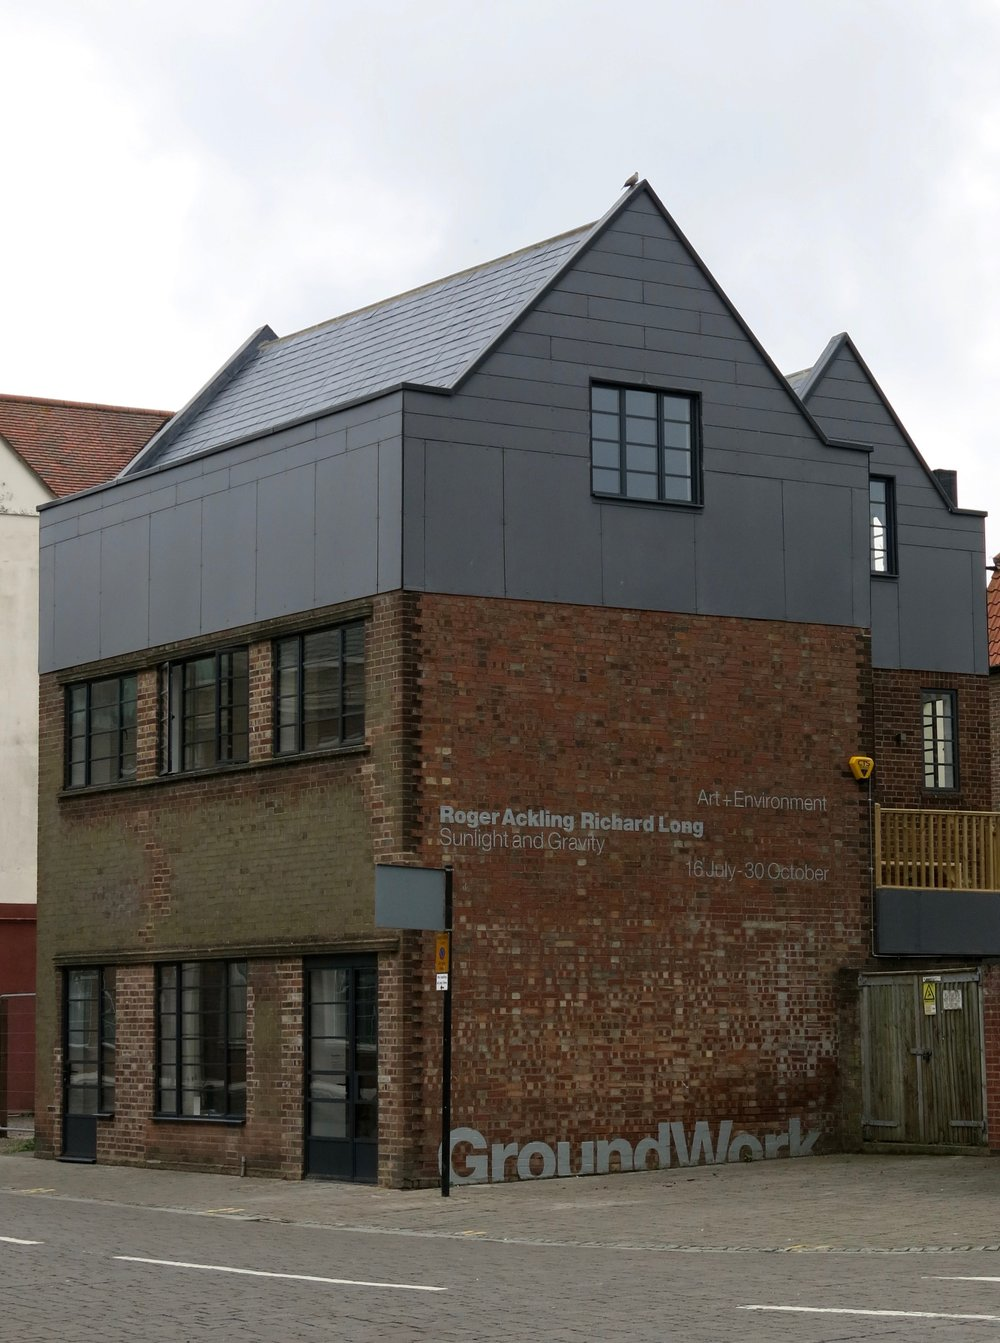 GroundWork Gallery, King's Lynn